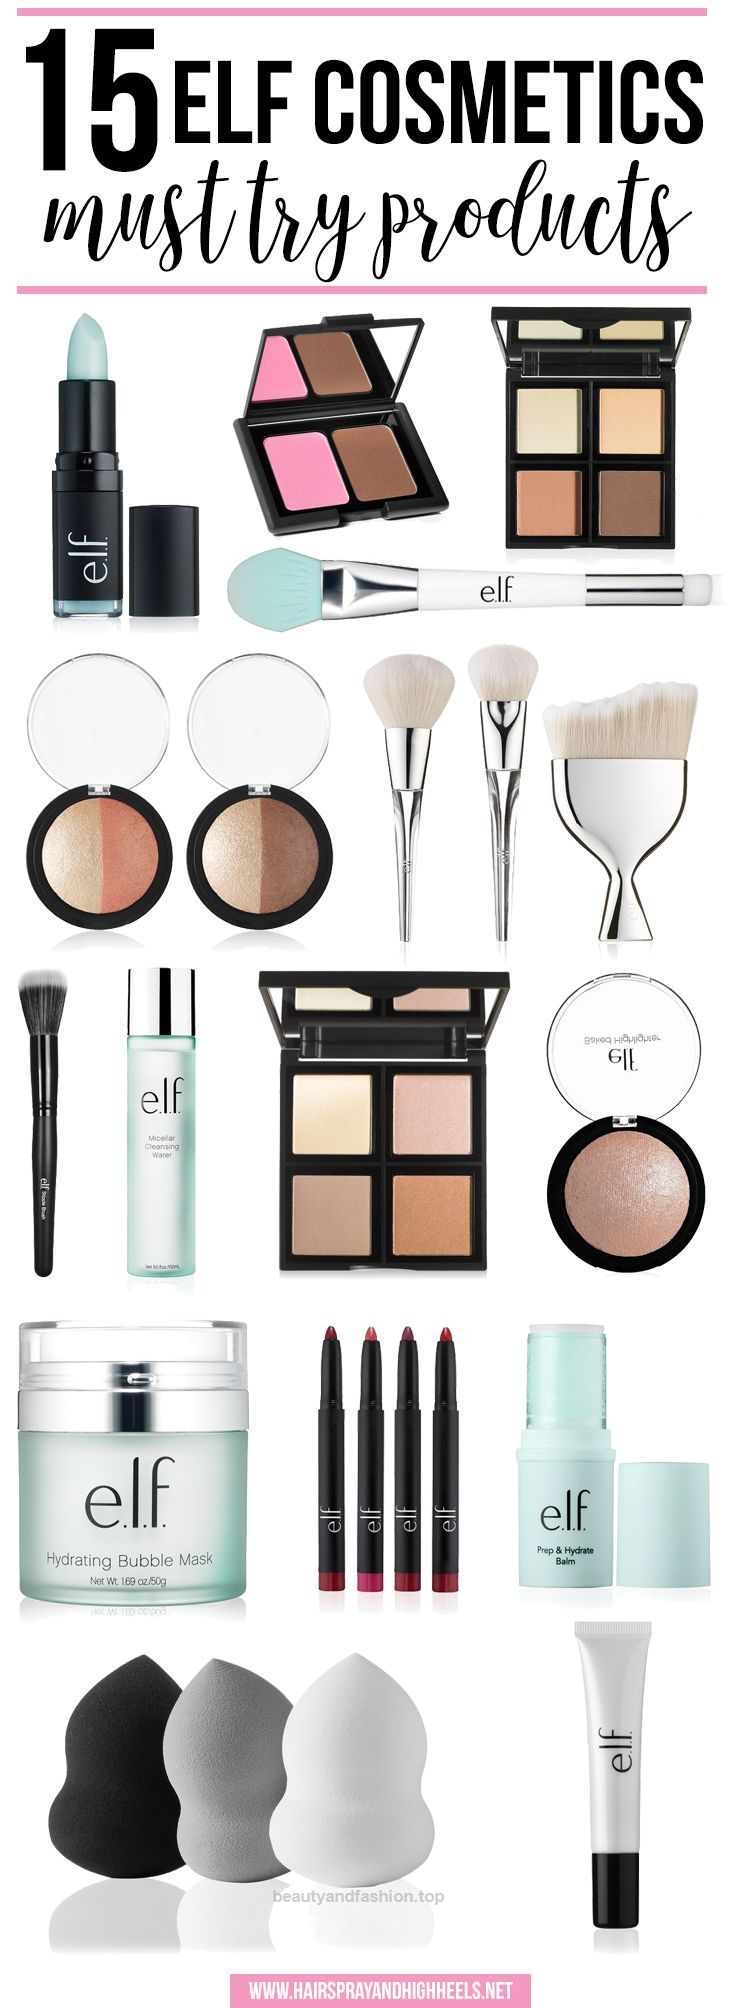 15 Elf Cosmetics Must Try Products! Elf is an affordable brand, with awesome pro…  http://www.beautyandfashion.top/2017/08/06/15-elf-cosmetics-must-try-products-elf-is-an-affordable-brand-with-awesome-pro/